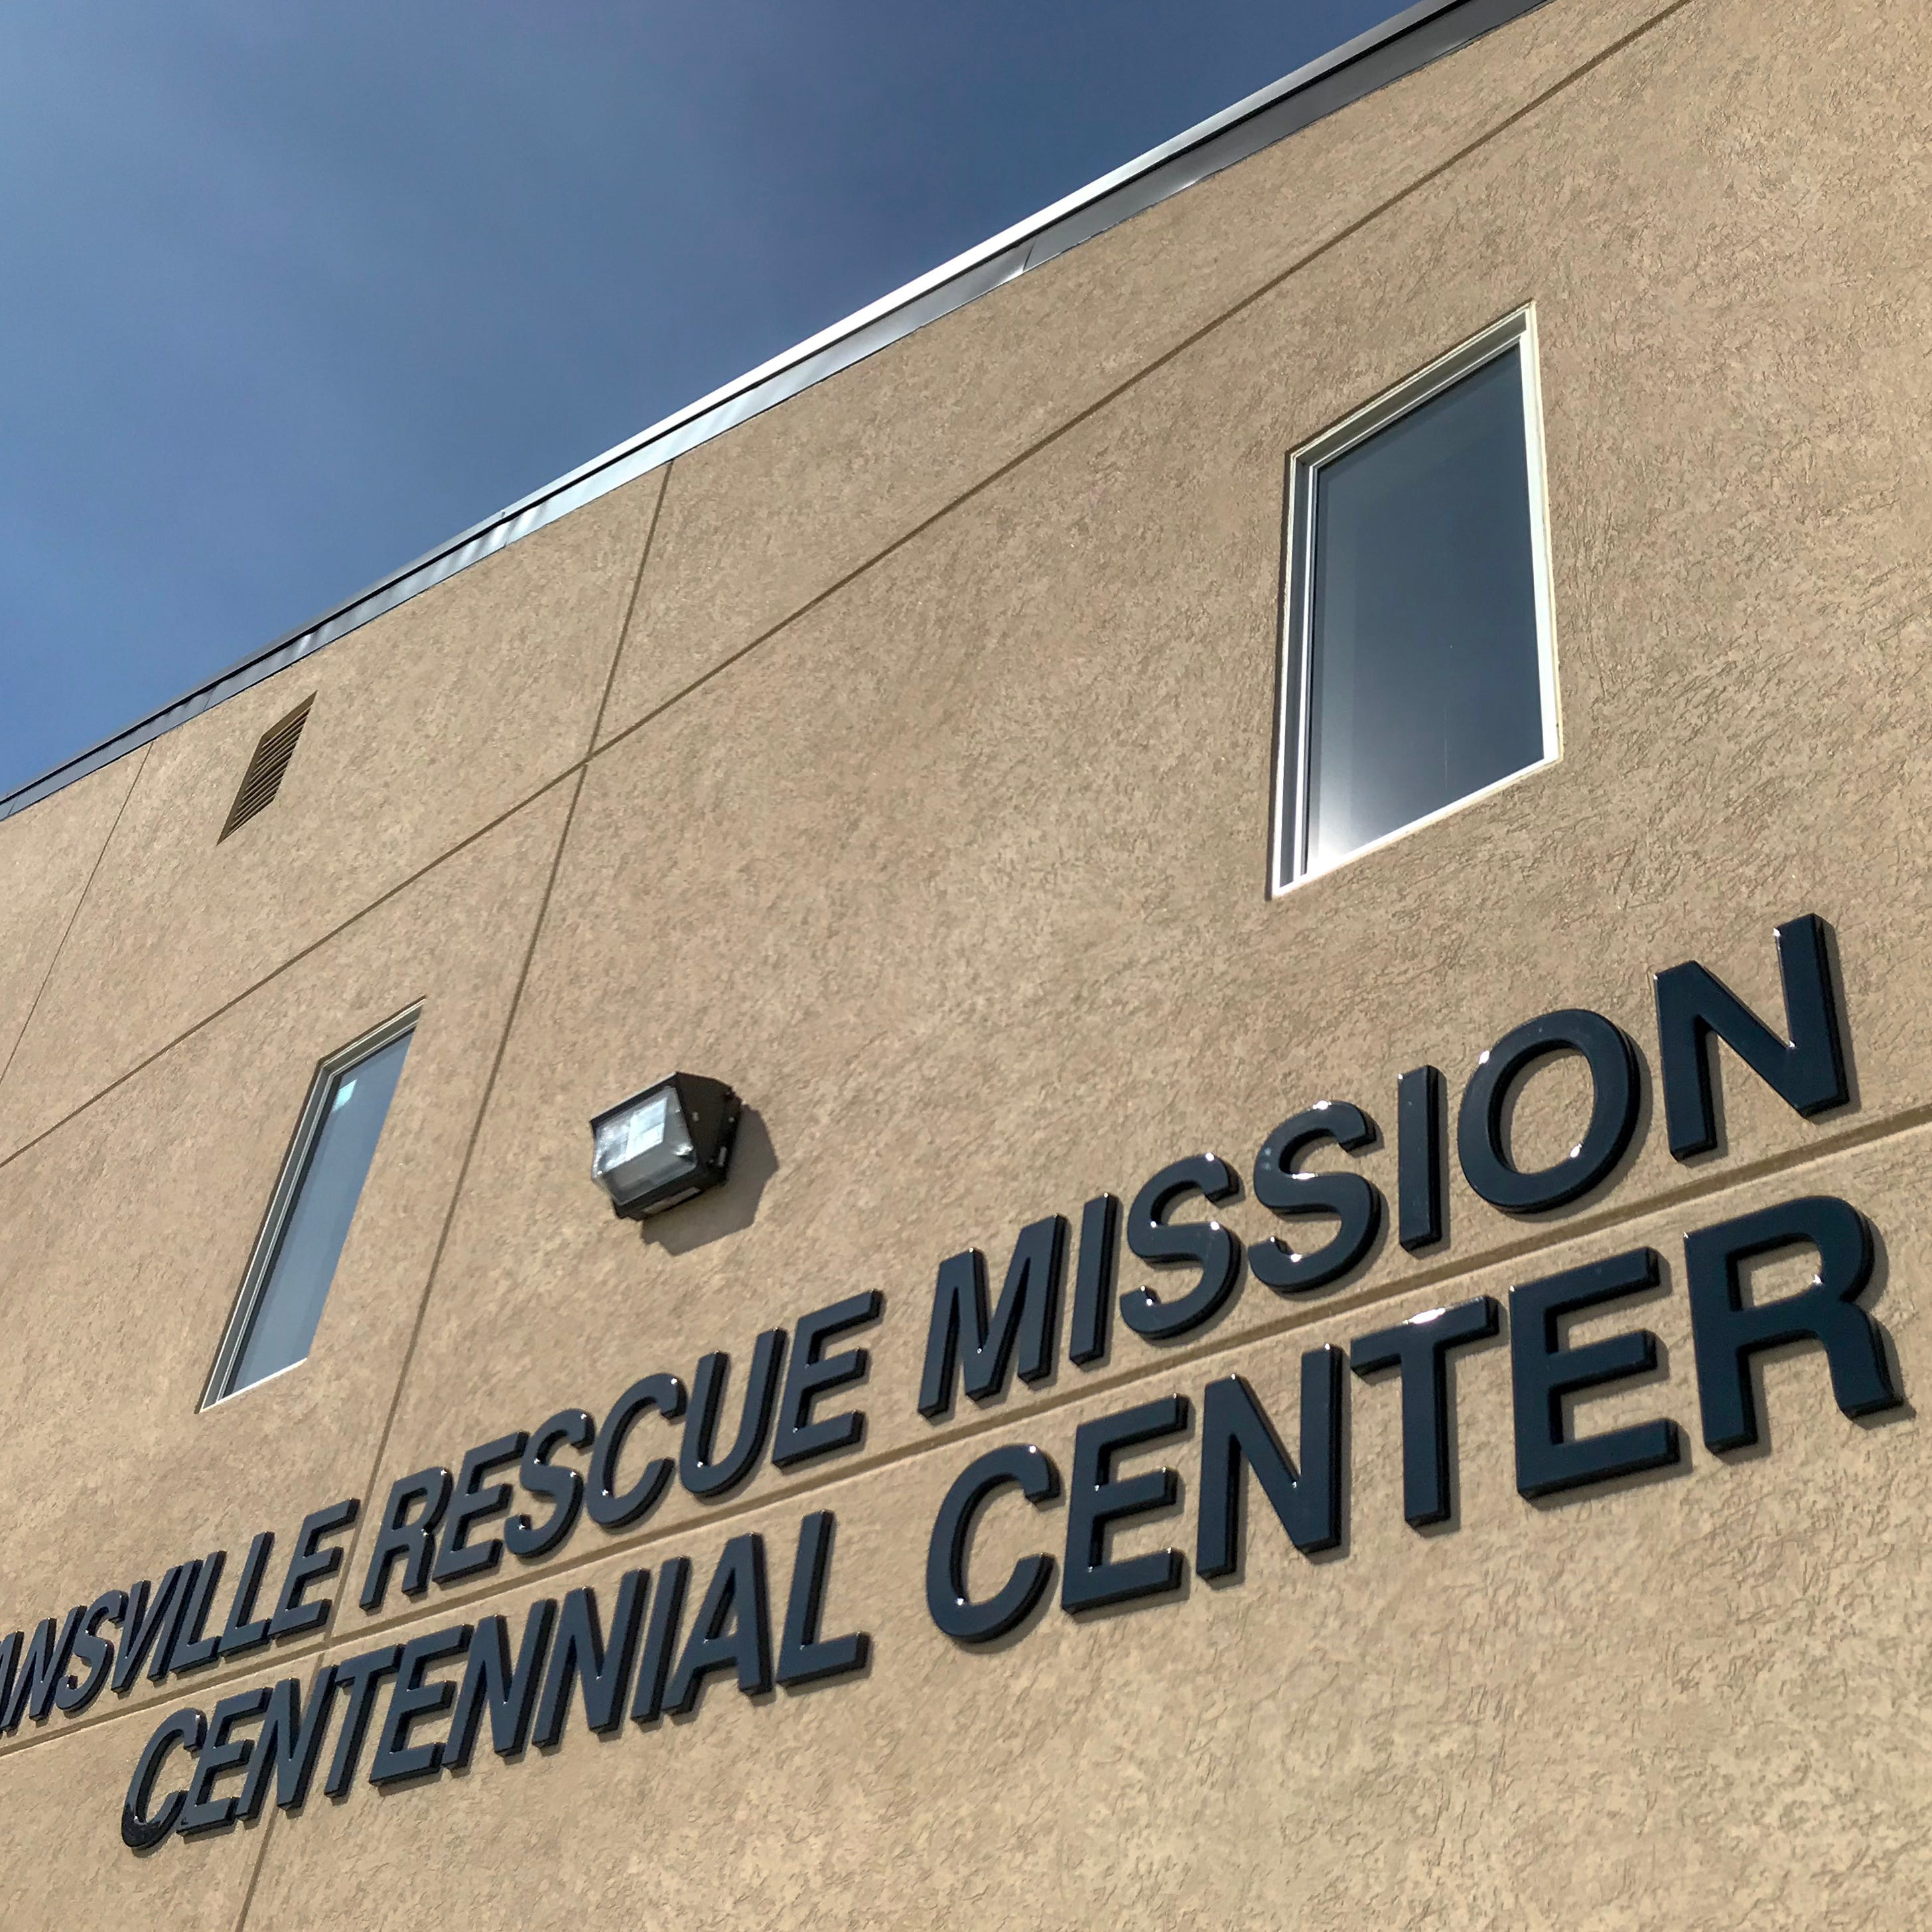 Evansville Rescue Mission's Centennial Center is open. Here's what you need to know